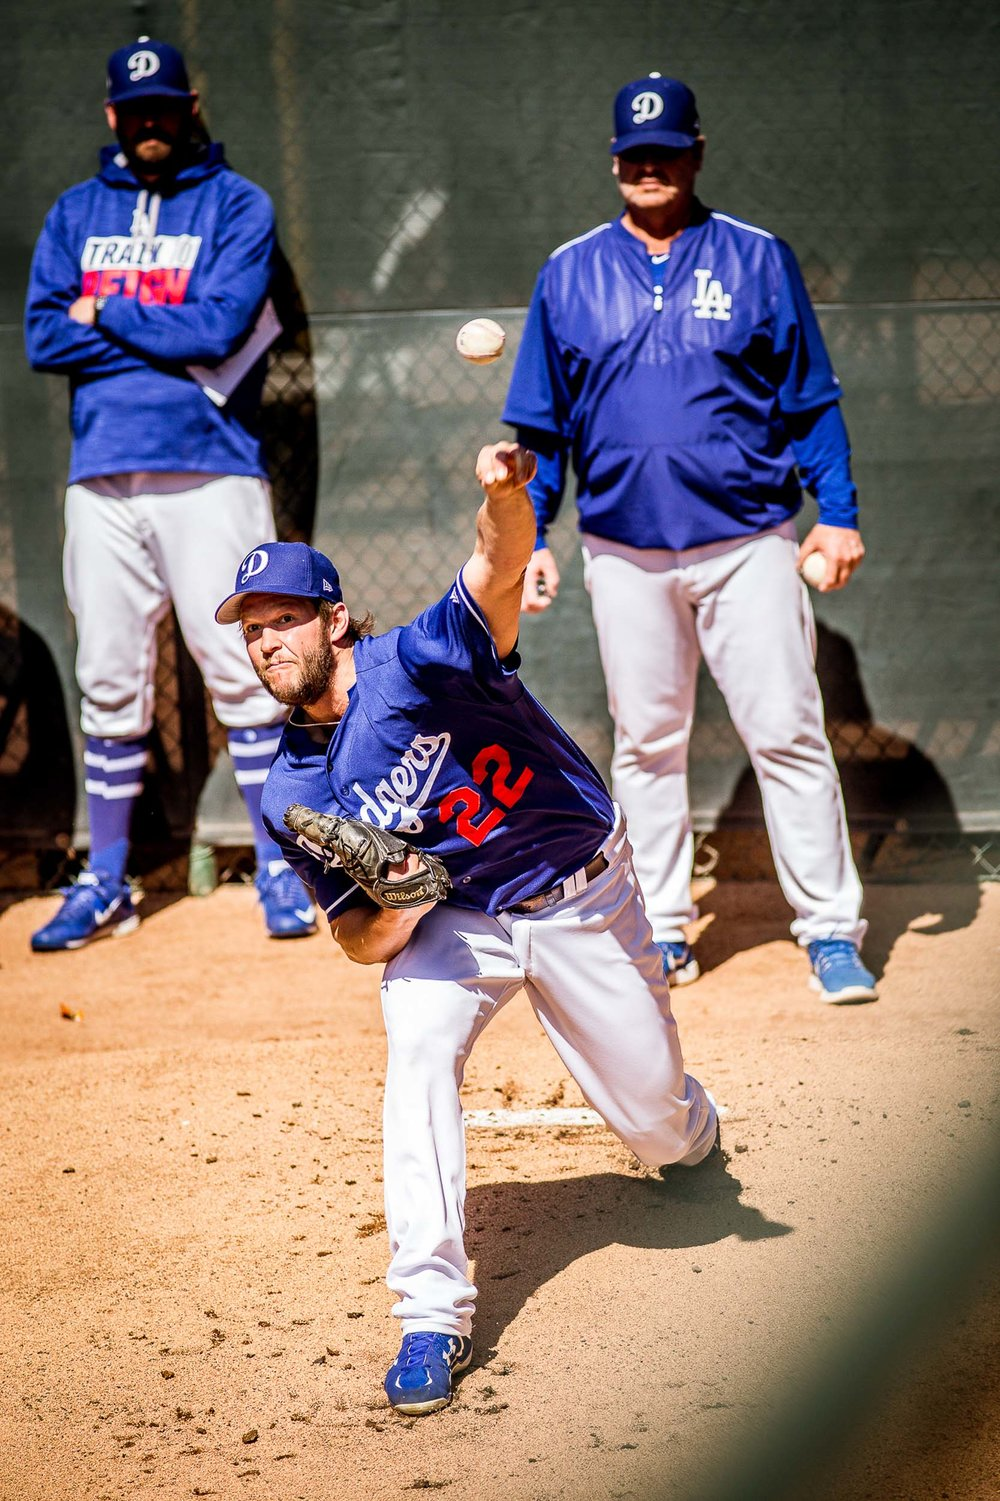 Clayton Kershaw warming up